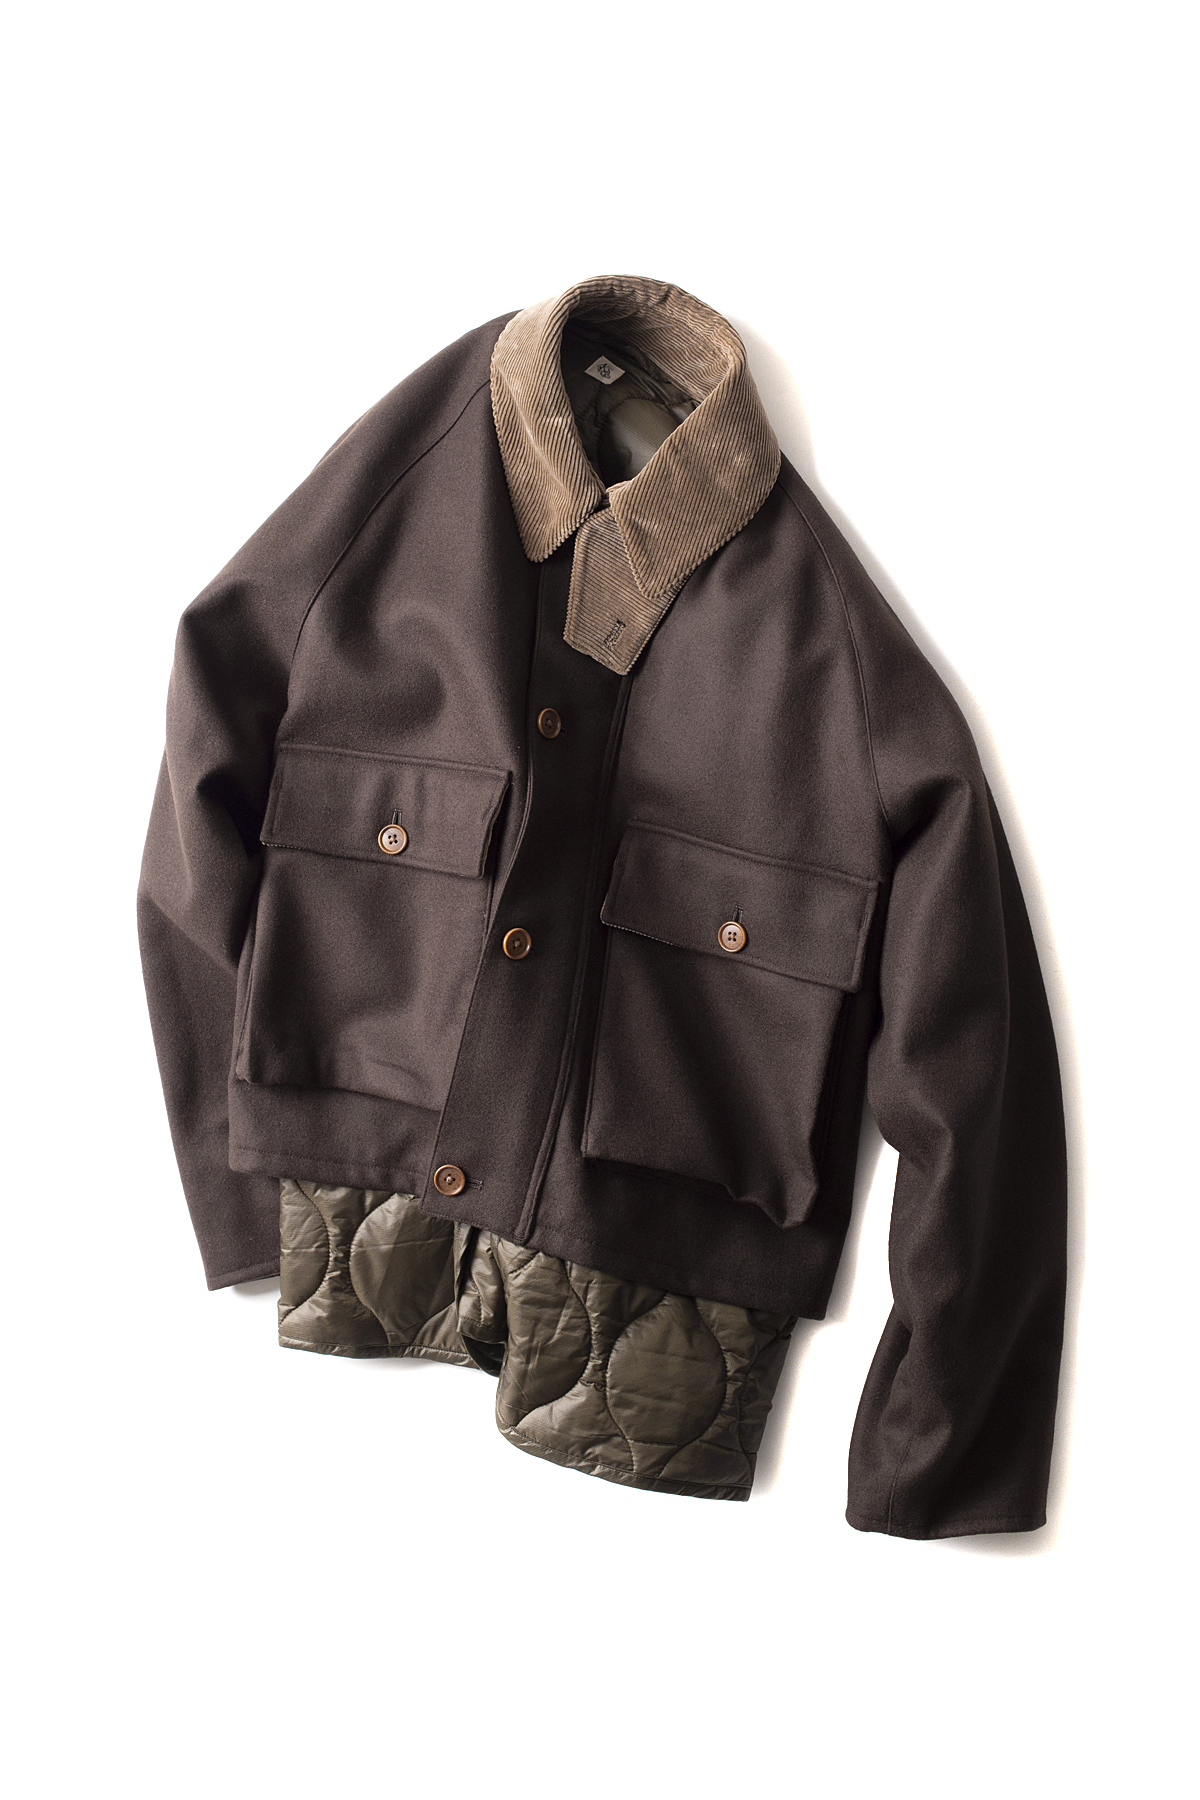 Kaptain Sunshine : Layered Fisherman JK (Brown)